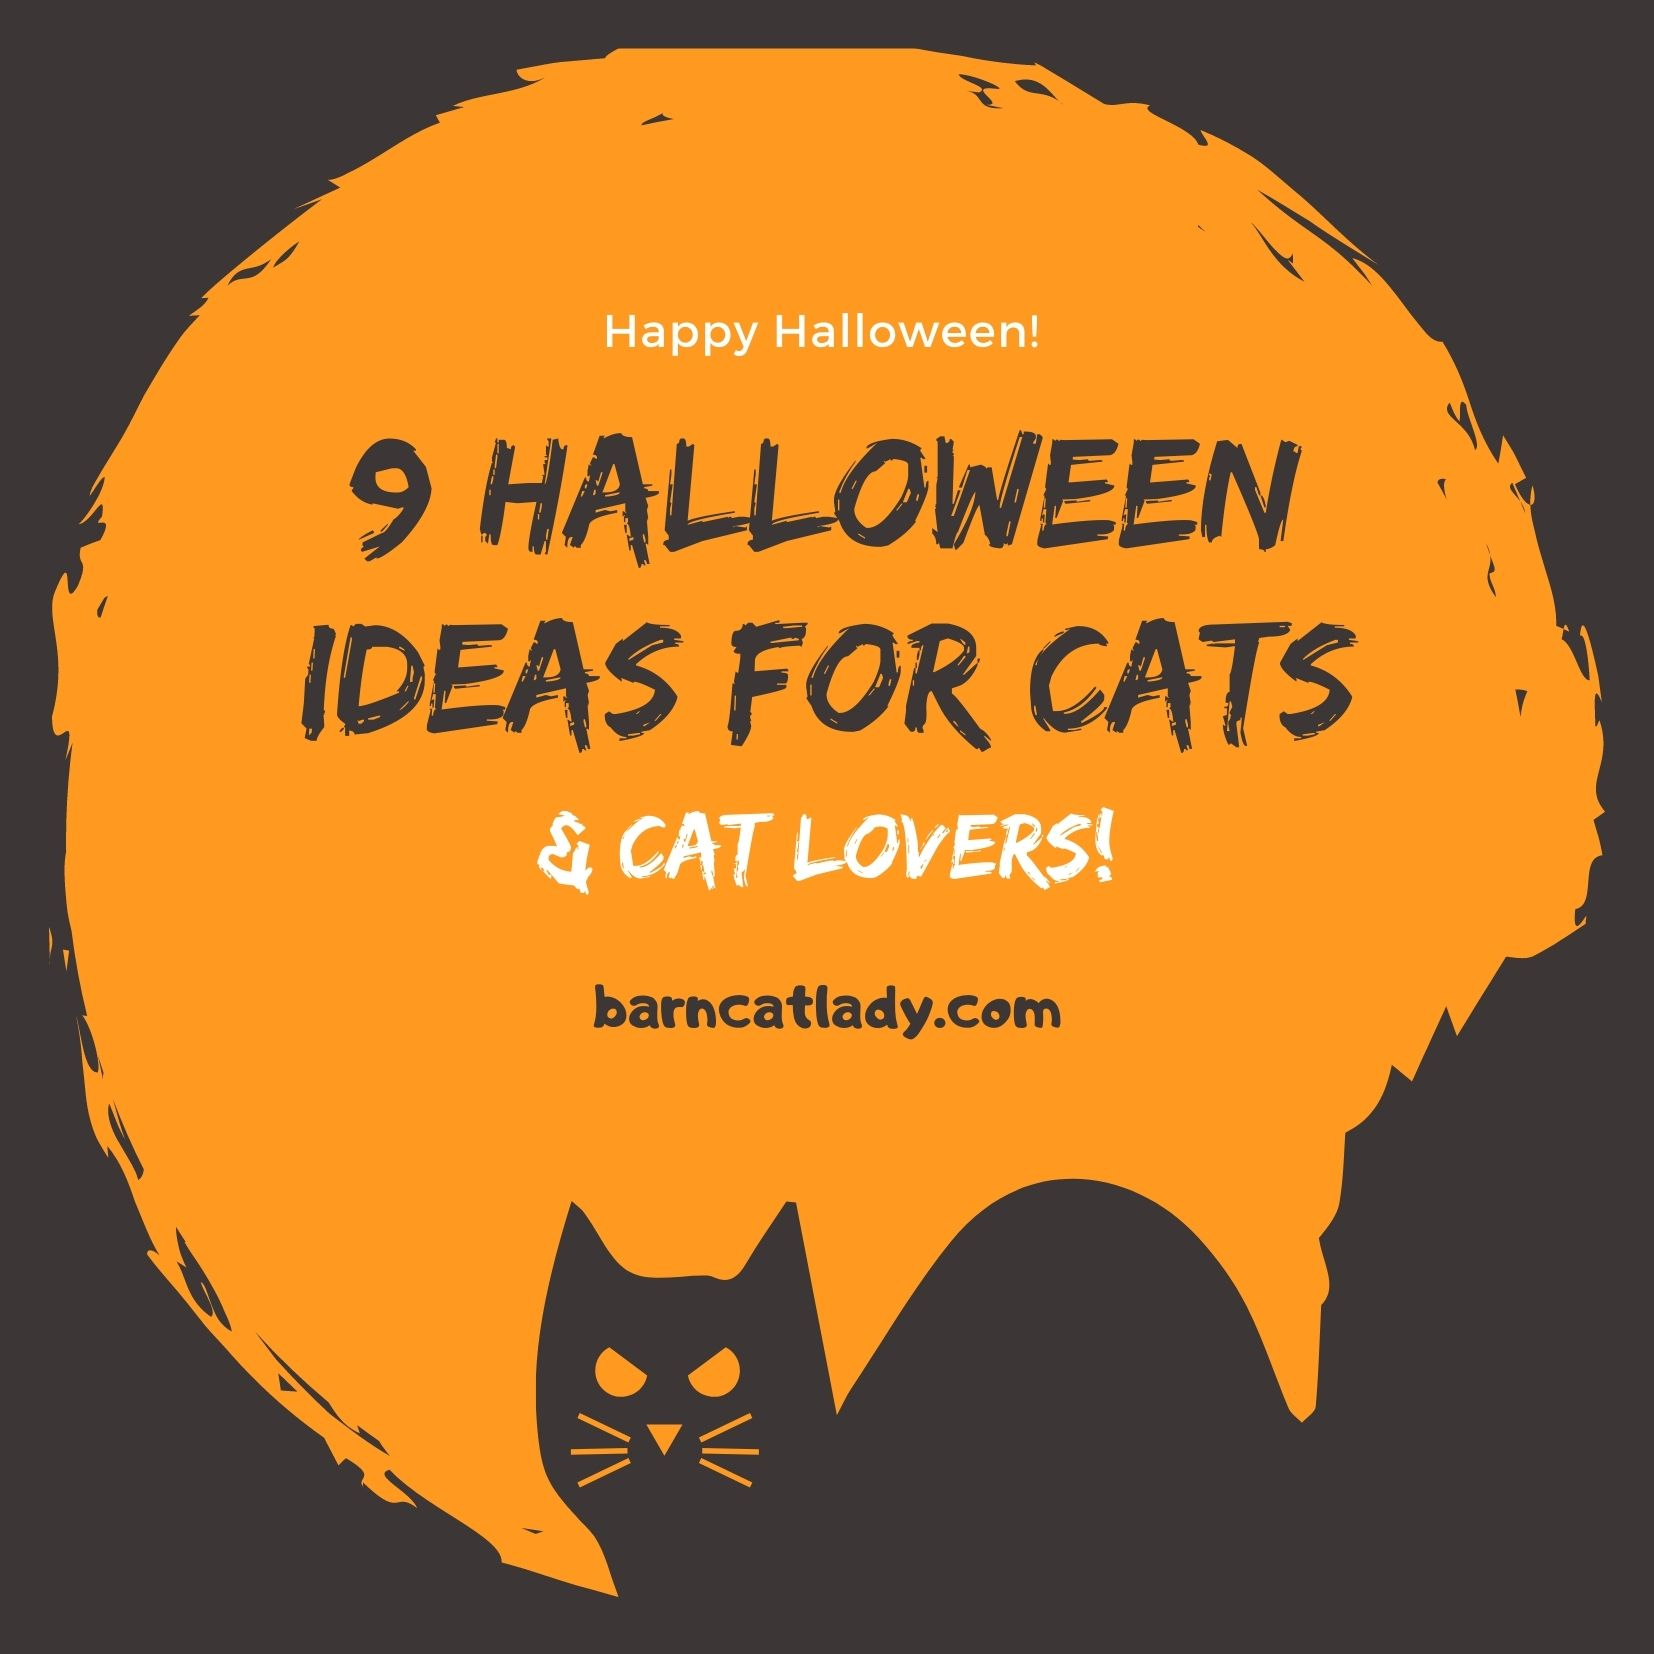 Halloween Ideas for Cats